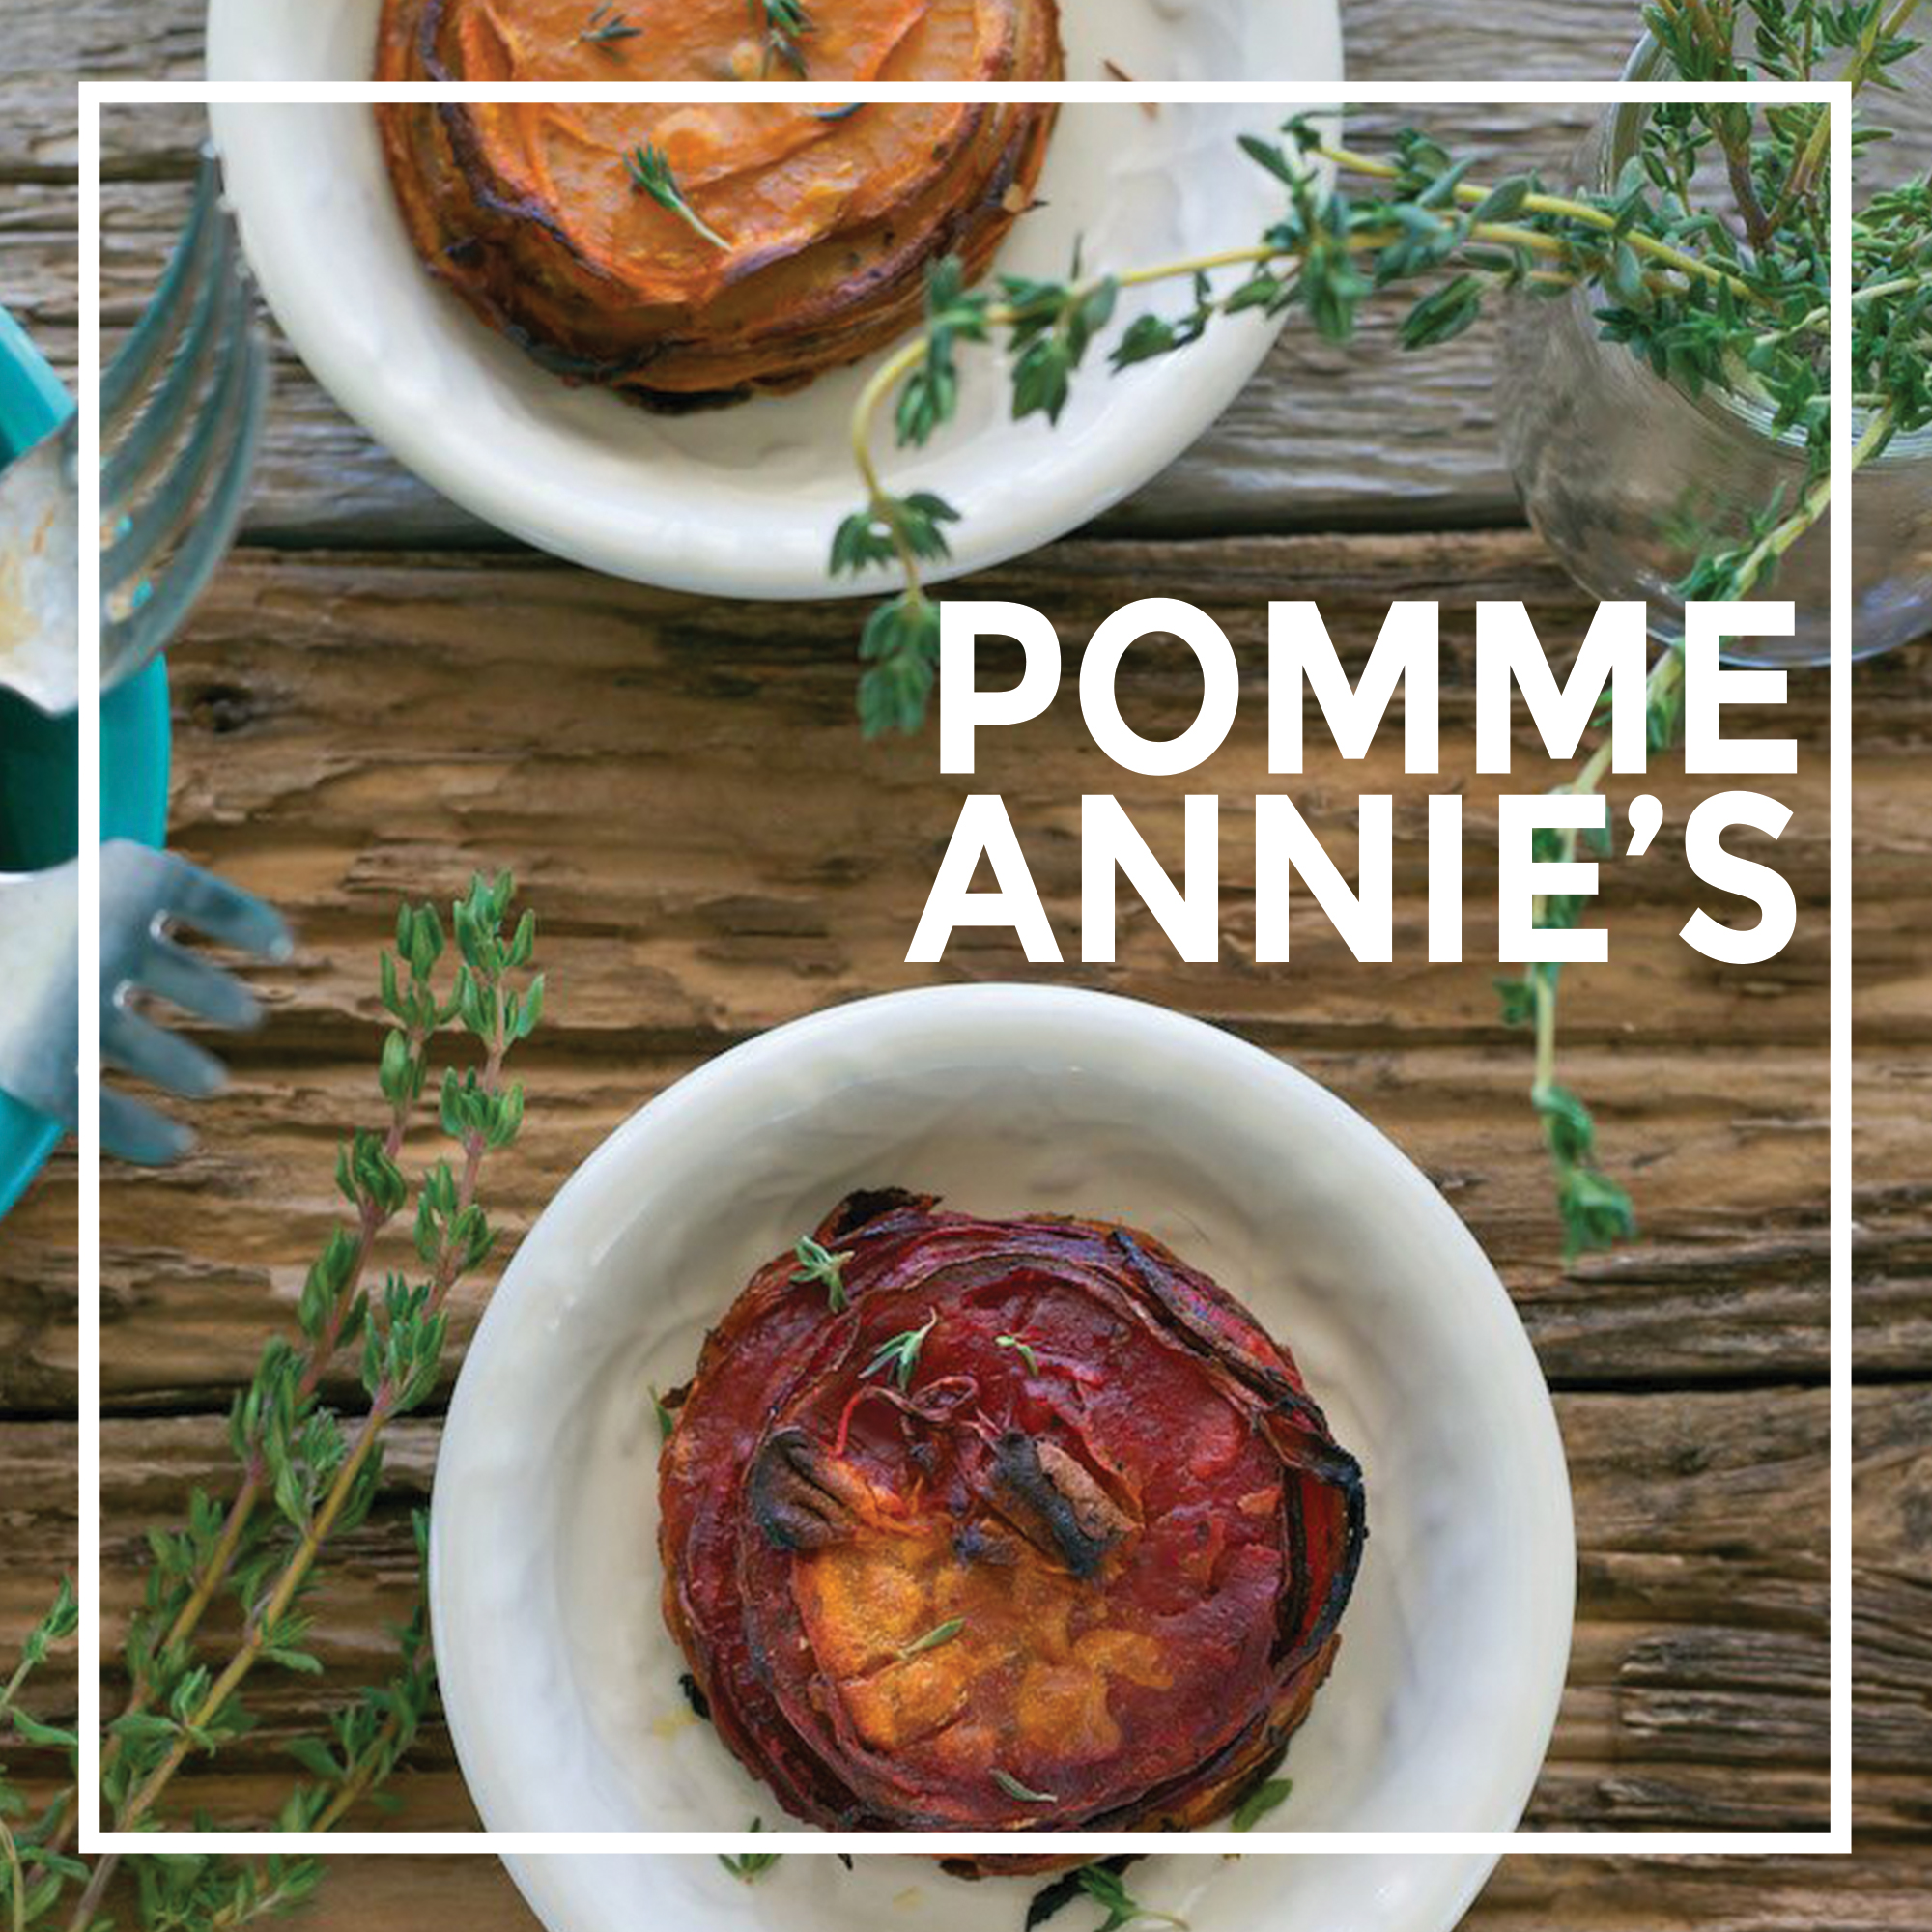 Pomme Annie's by Unrefined Vegan